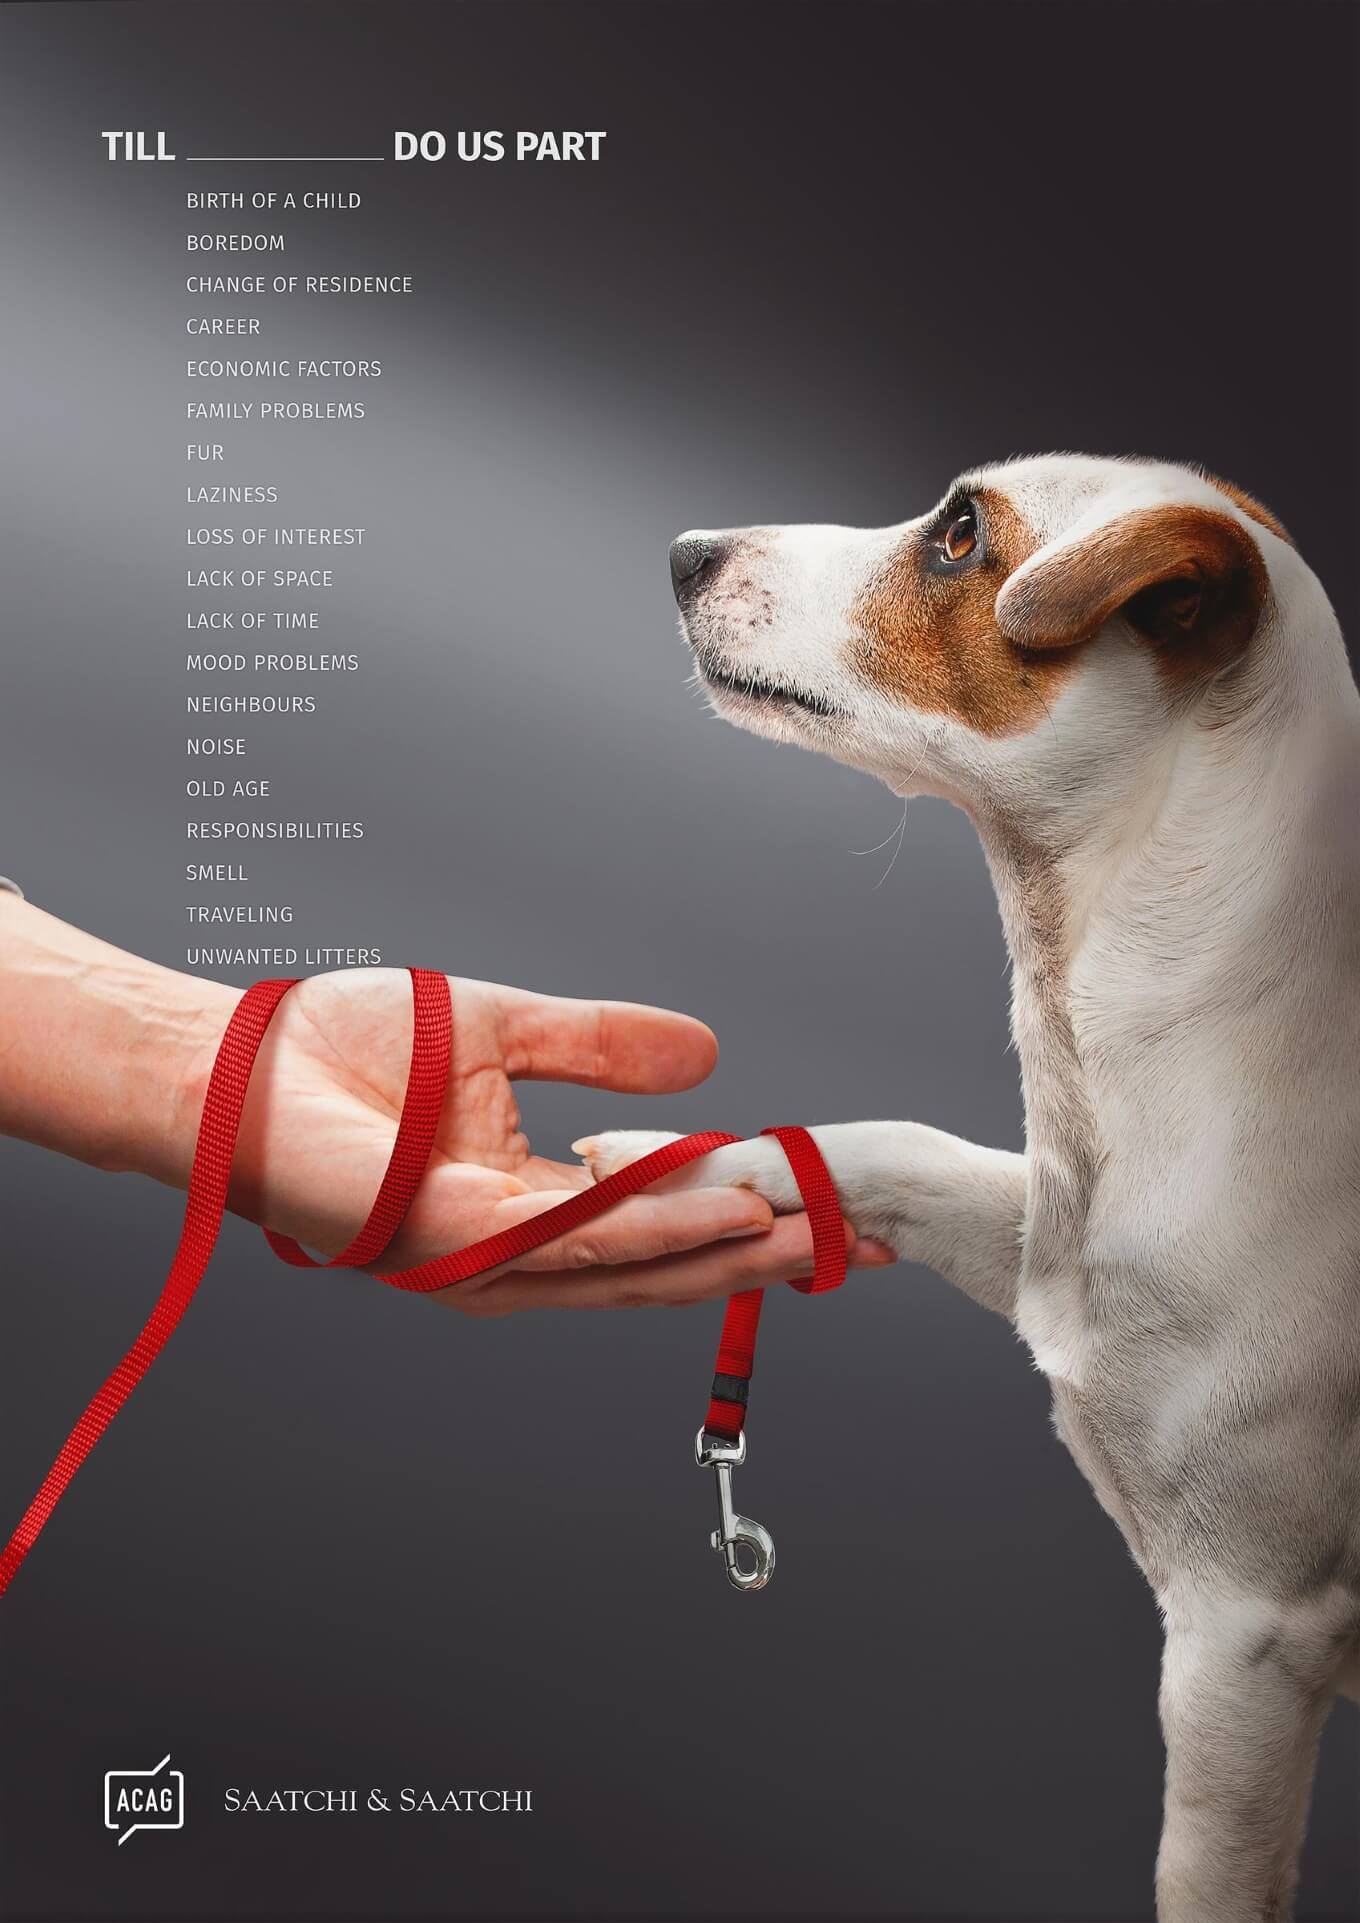 Saatchi and Saatchi - think before you adopt